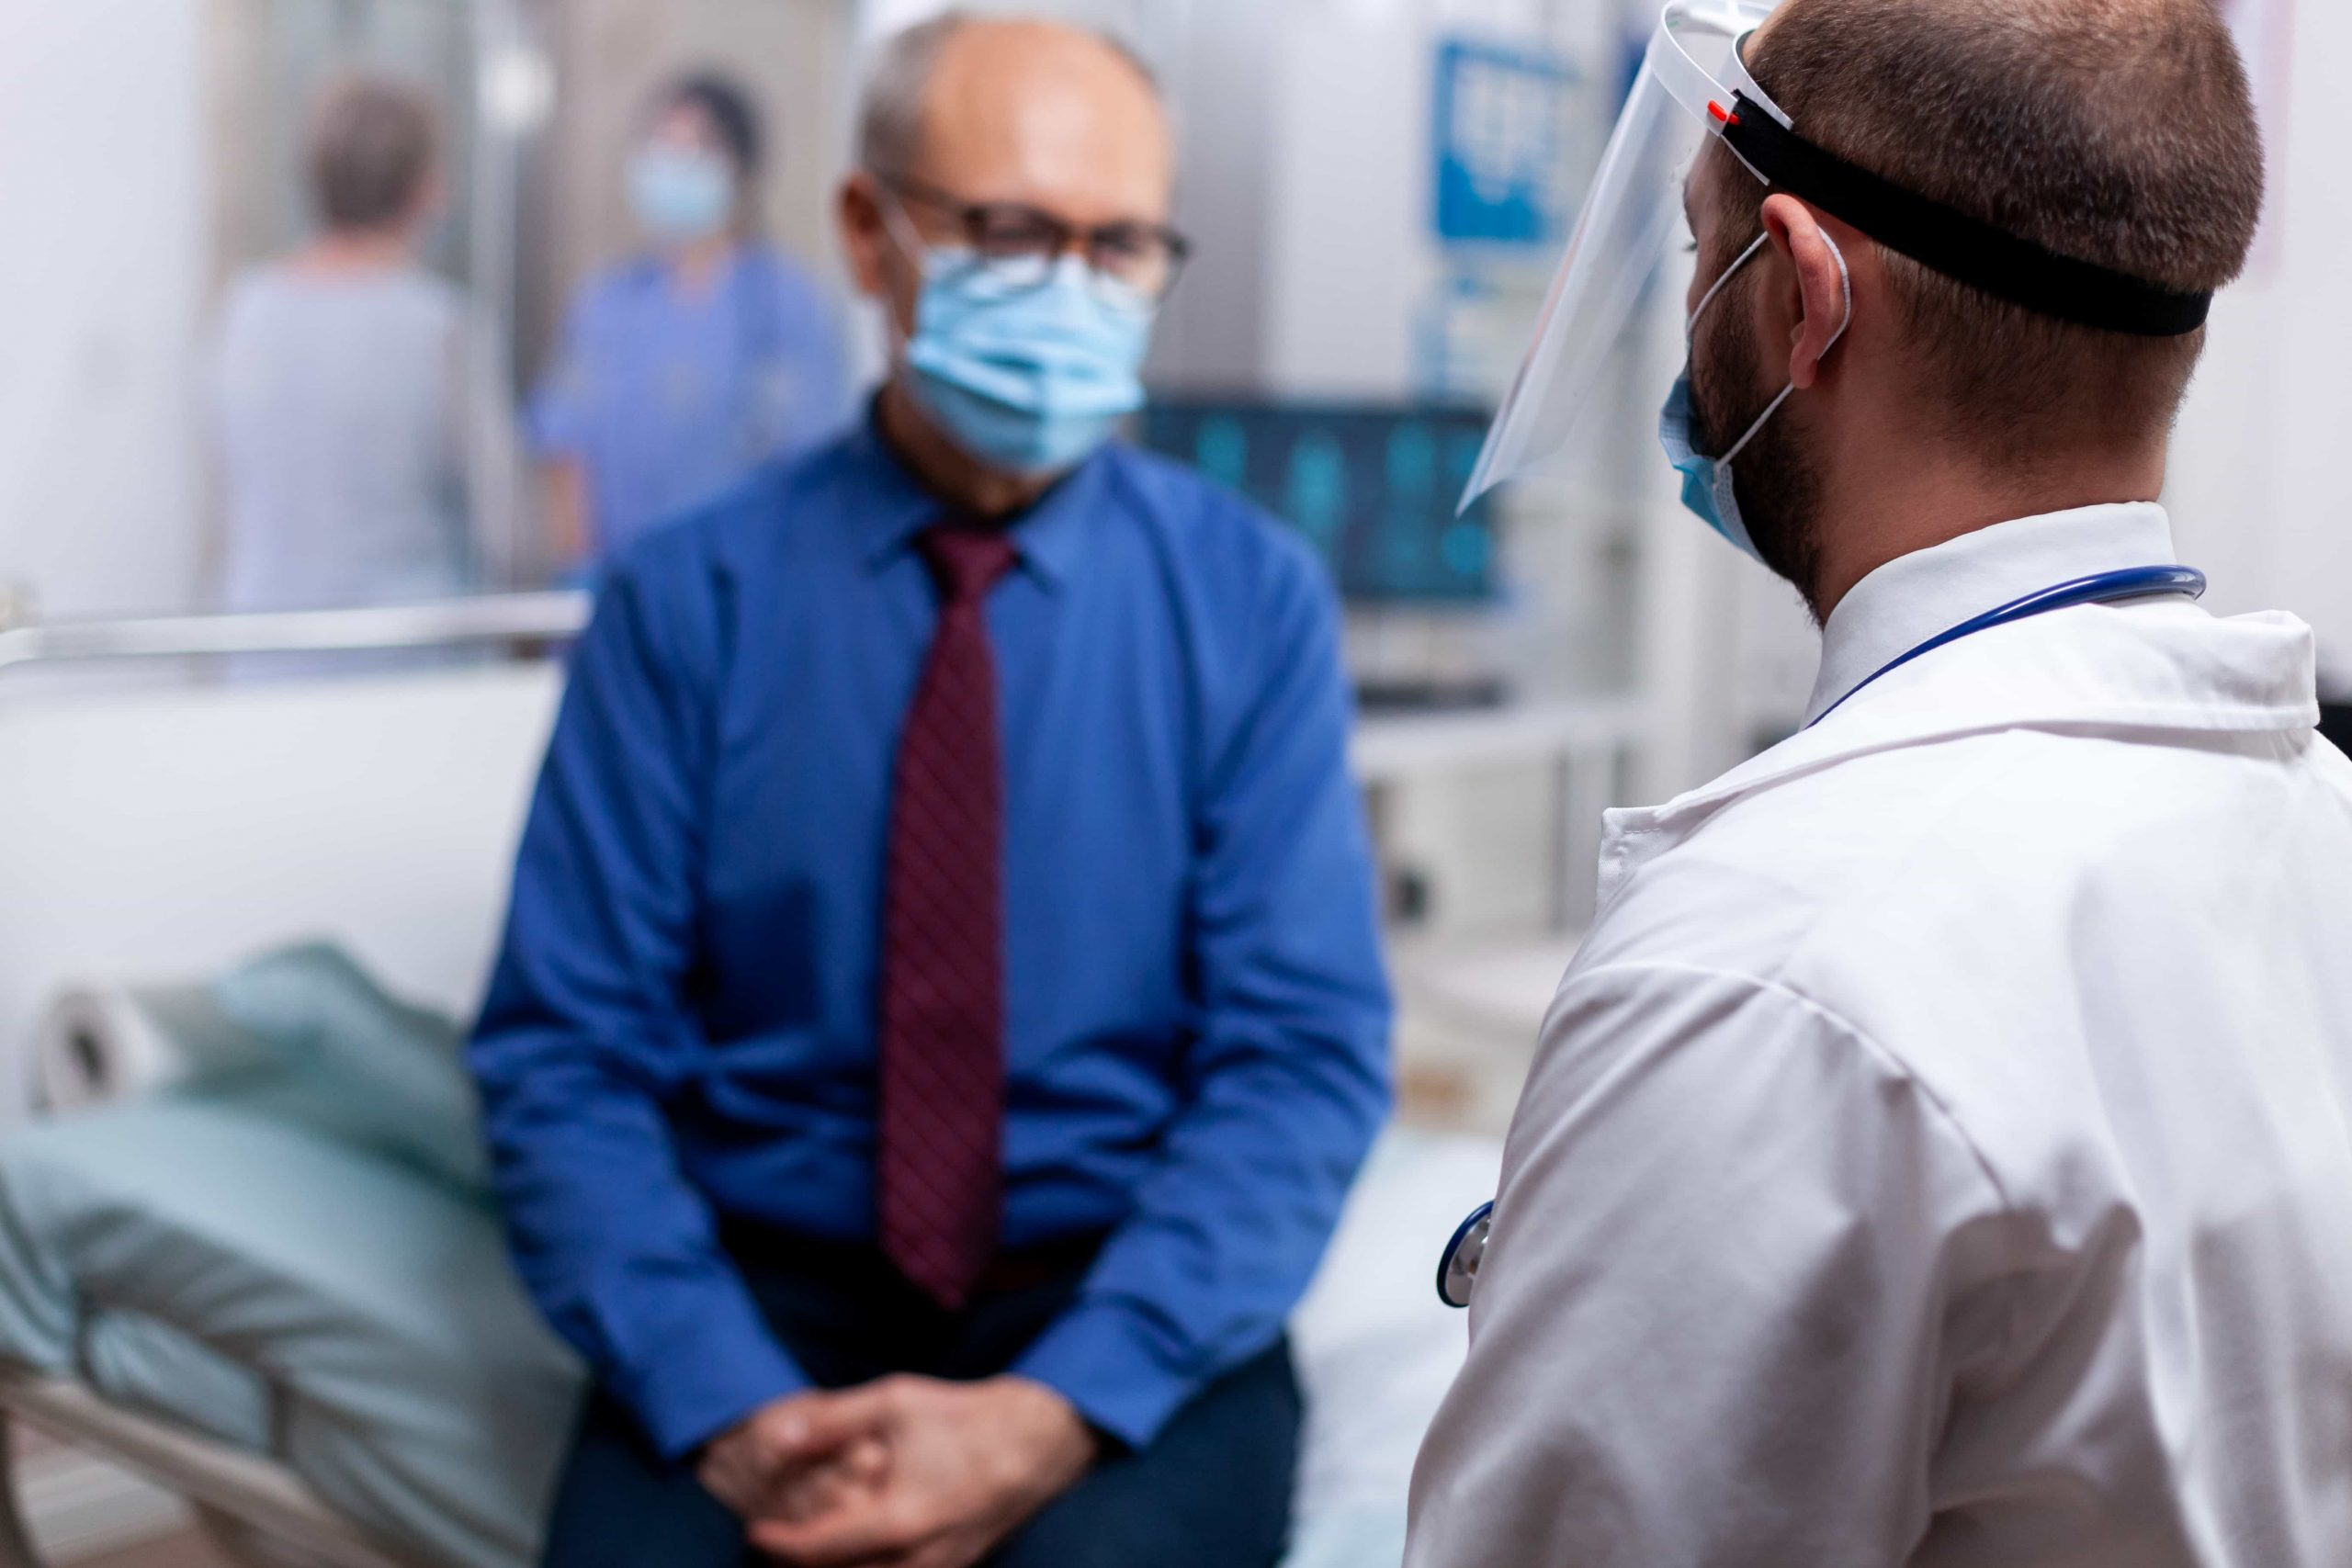 doctor in visor talking to patient with mask